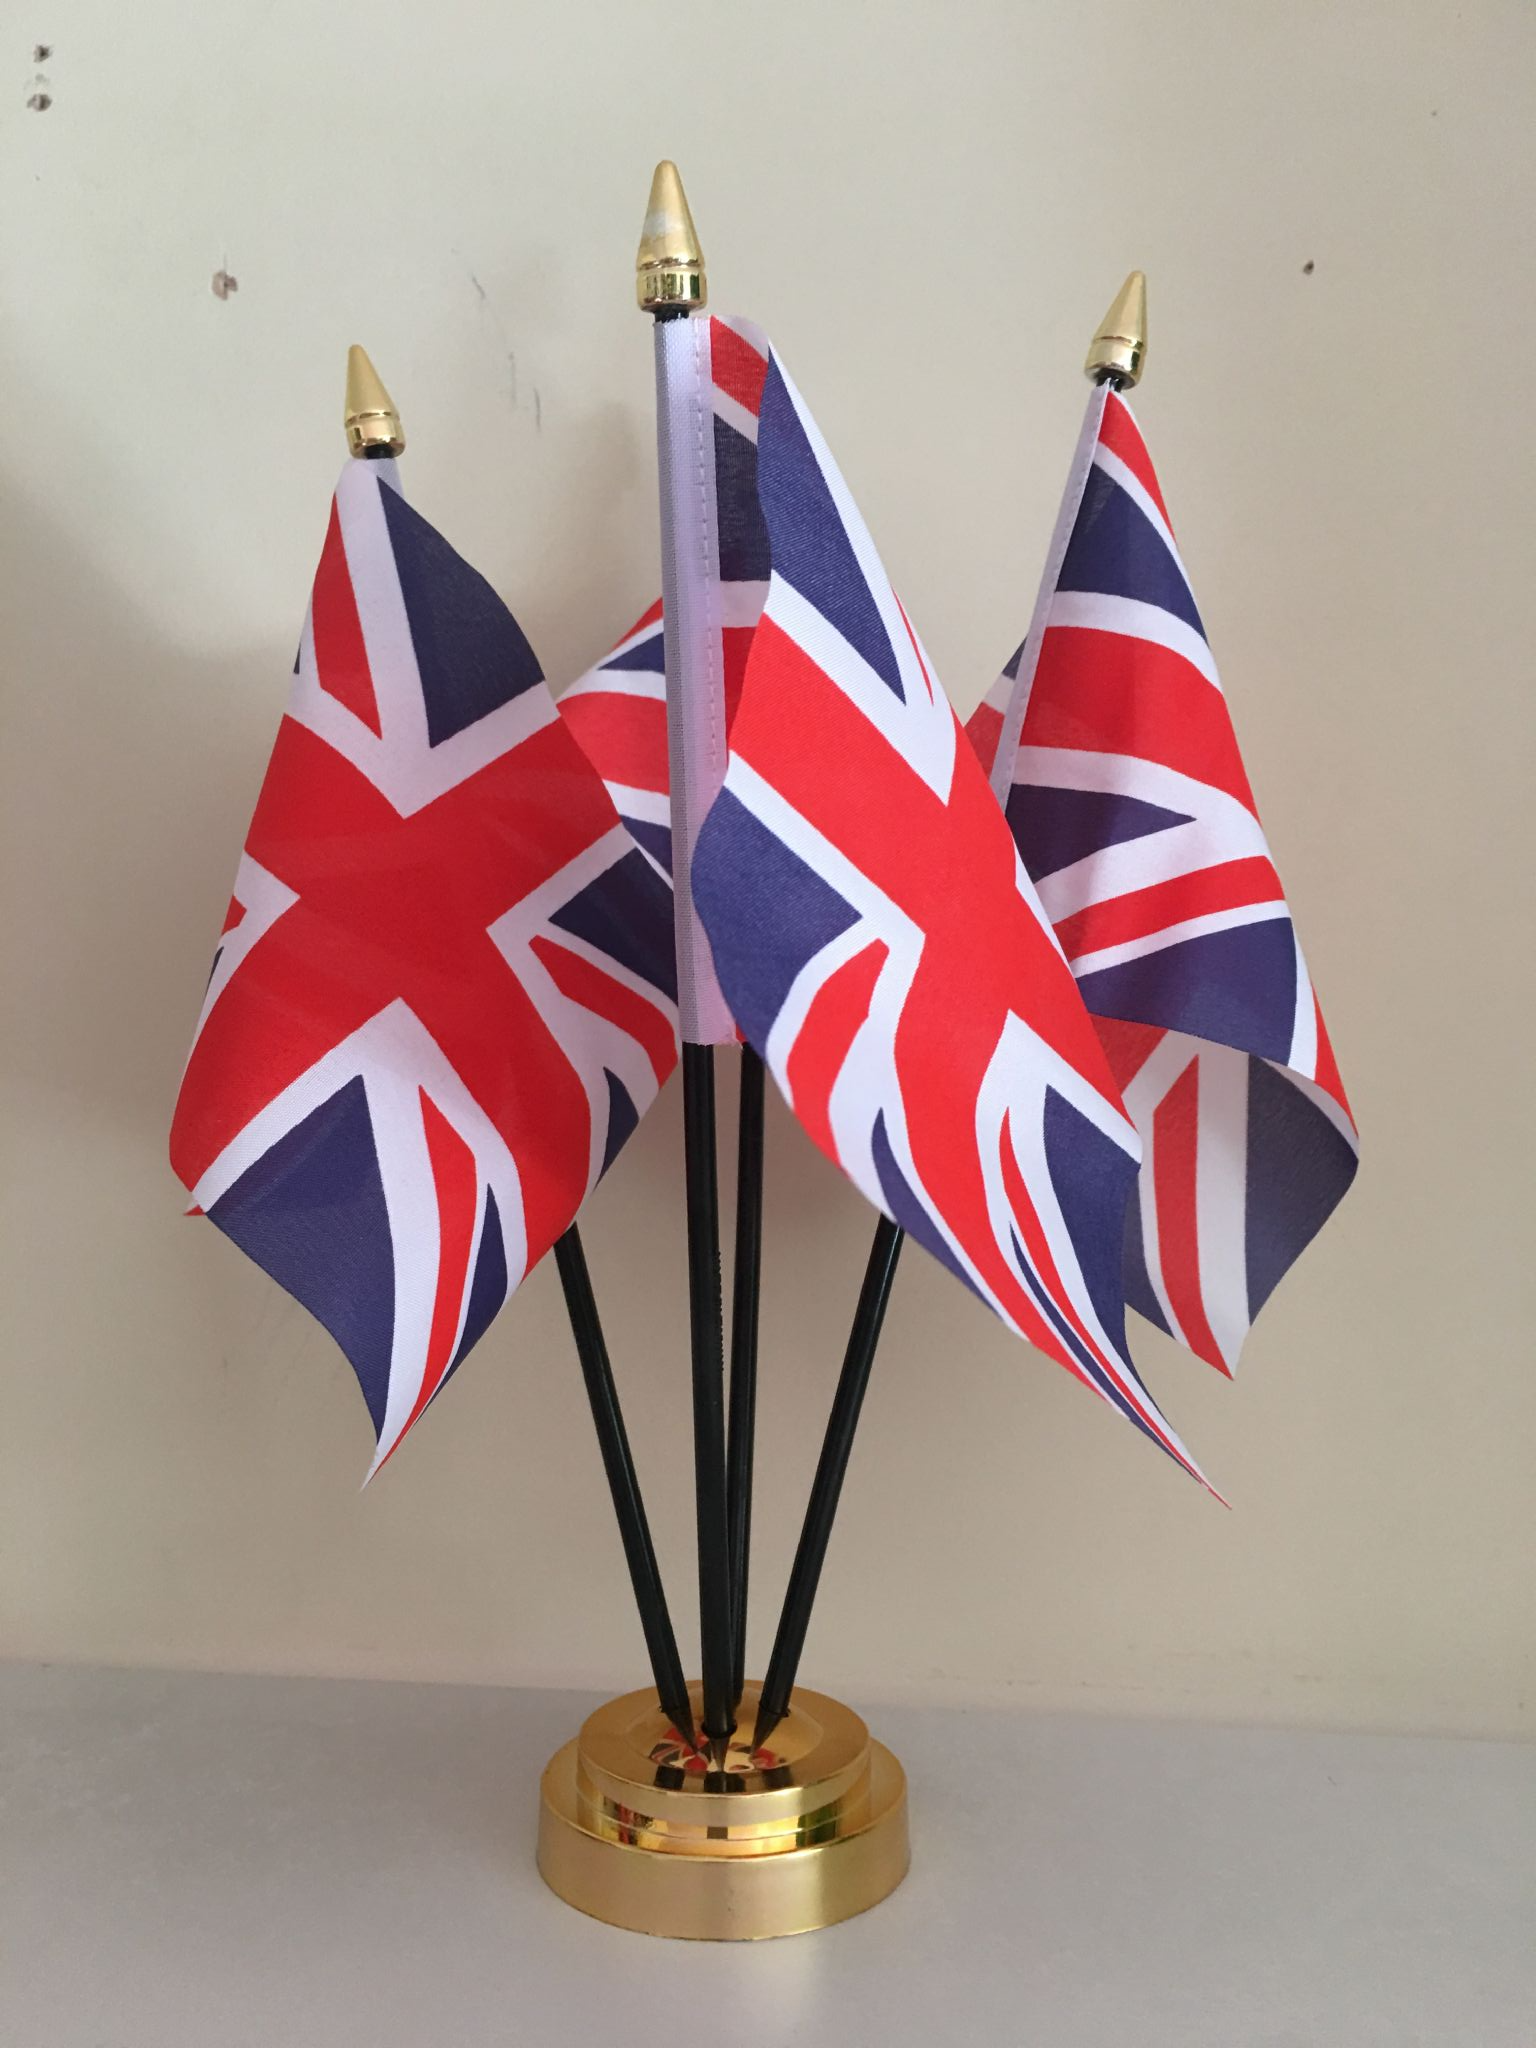 UNION JACK GREAT BRITAIN TABLE FLAG SET of 3 flags and base